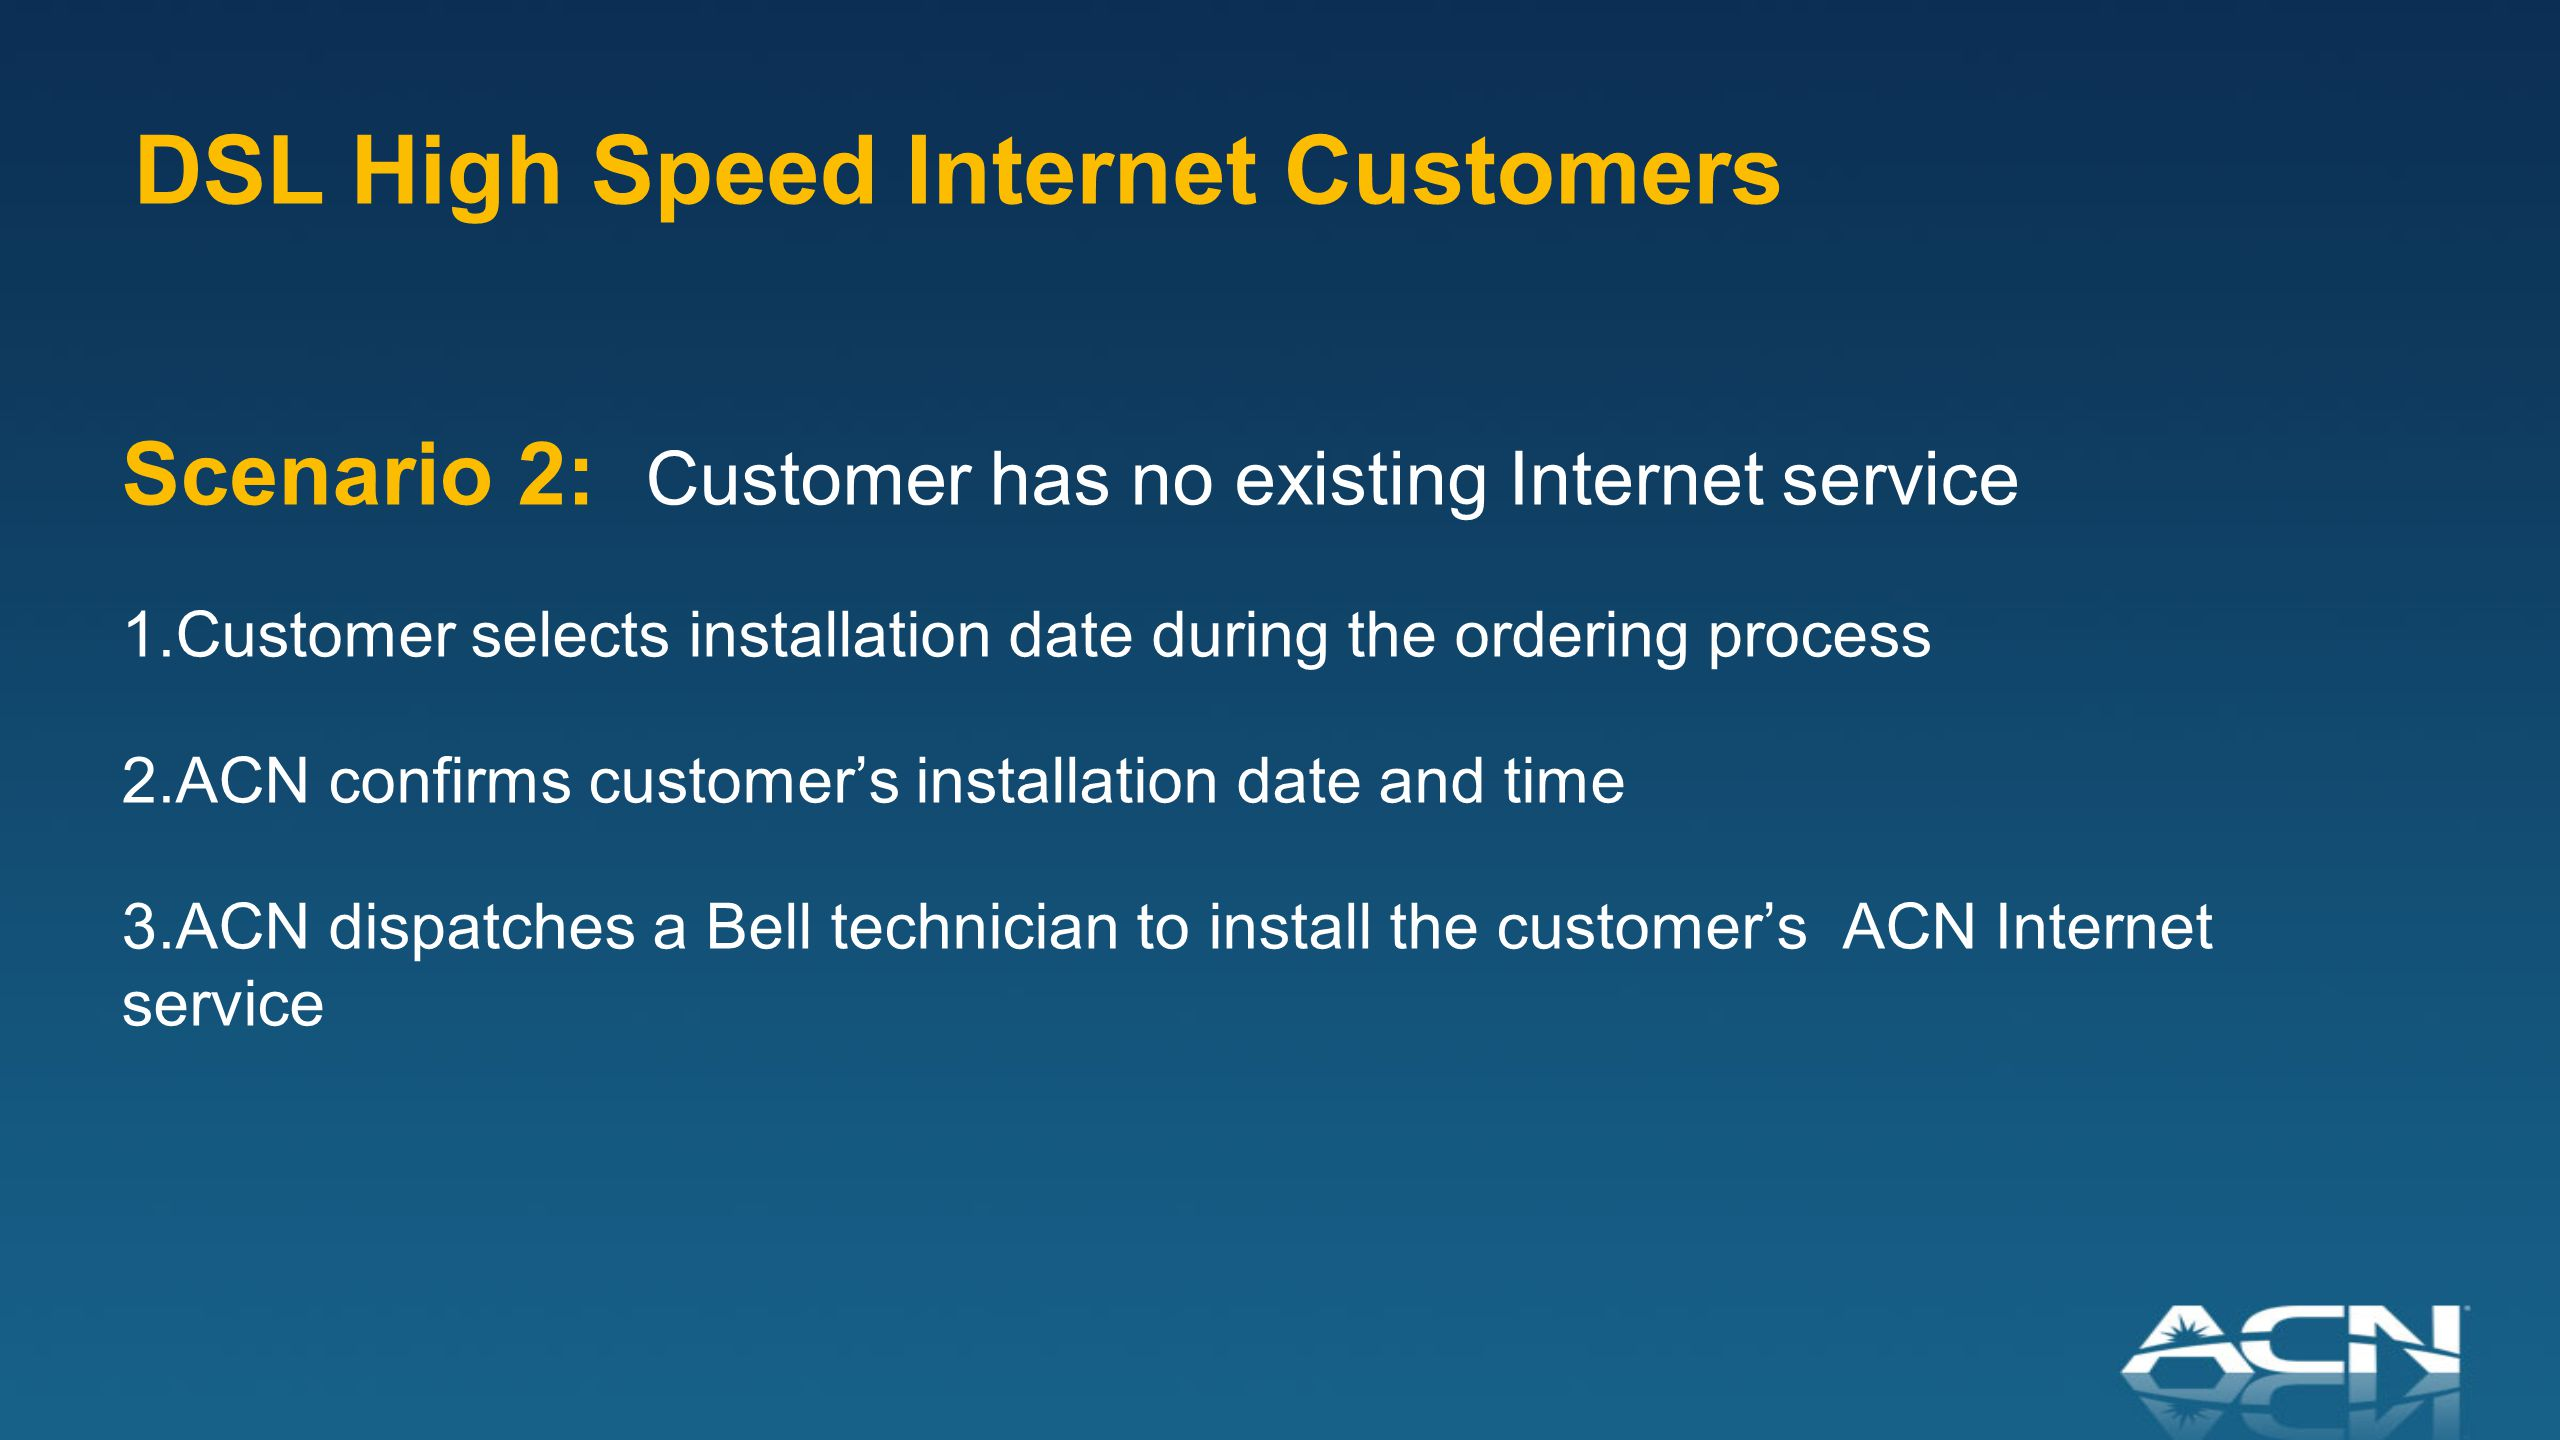 Scenario 2: Customer has no existing Internet service 1.Customer selects installation date during the ordering process 2.ACN confirms customer's installation date and time 3.ACN dispatches a Bell technician to install the customer's ACN Internet service DSL High Speed Internet Customers